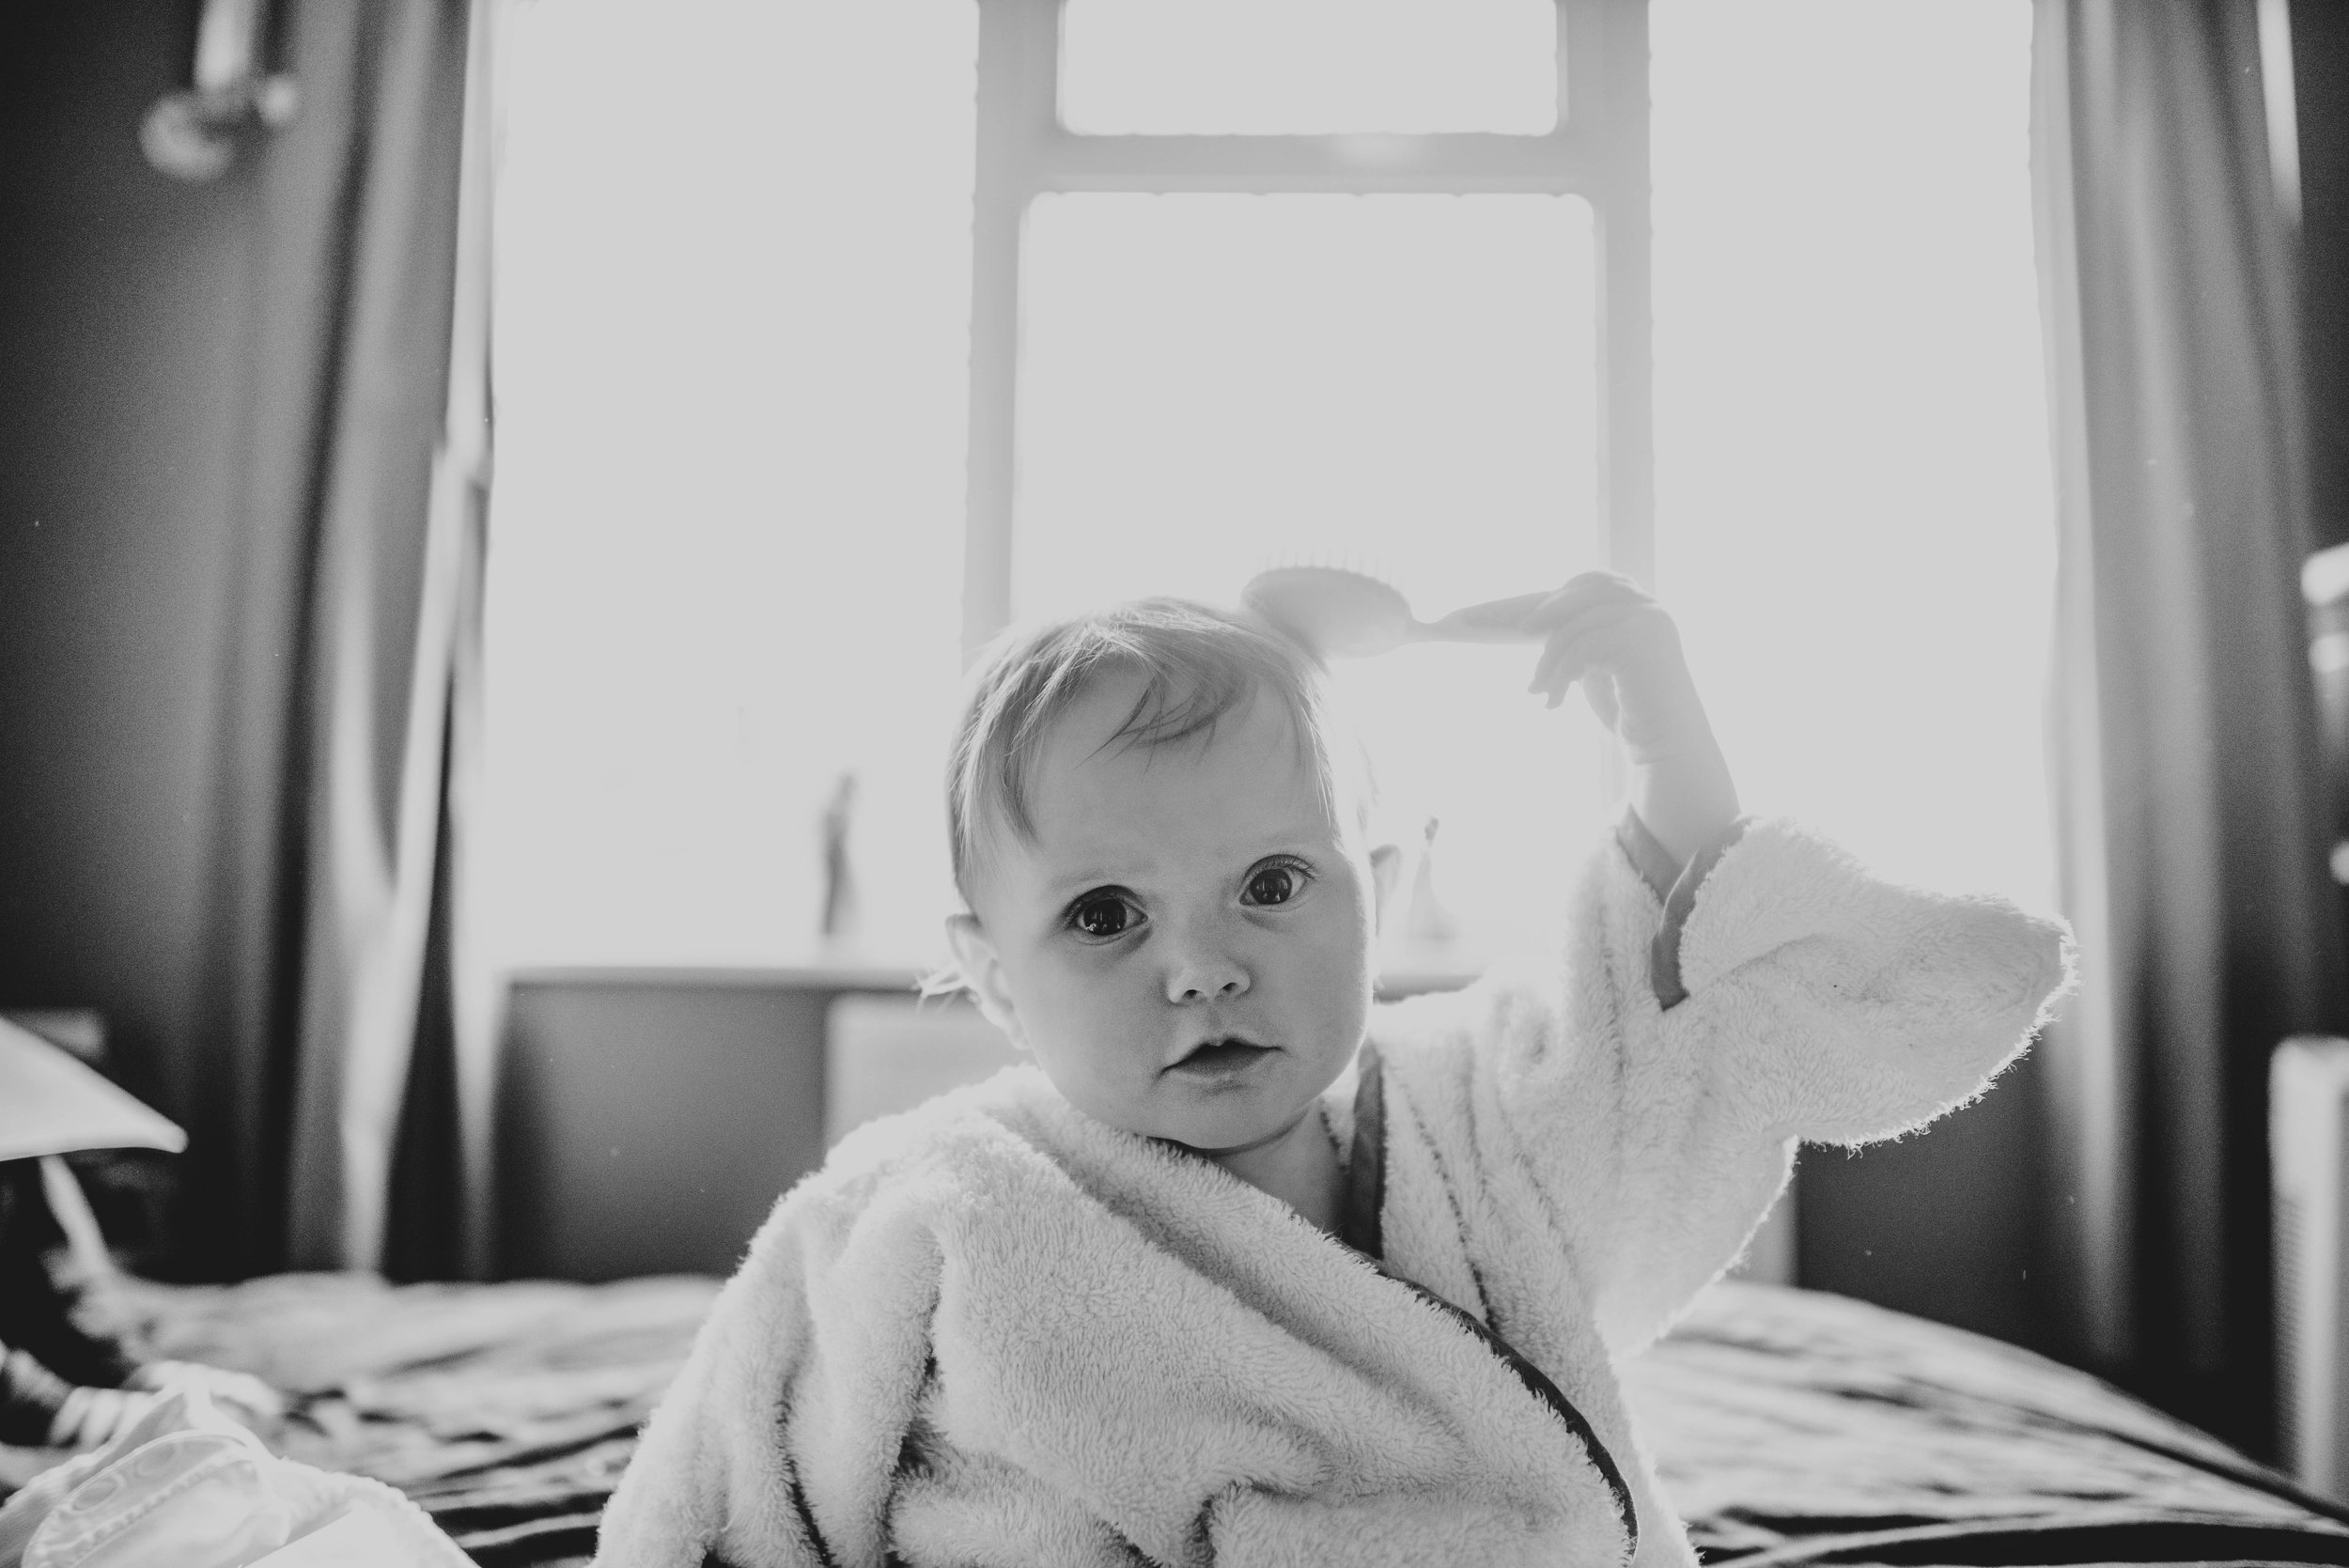 baby brushes hair on bed essex documentary portrait photographer